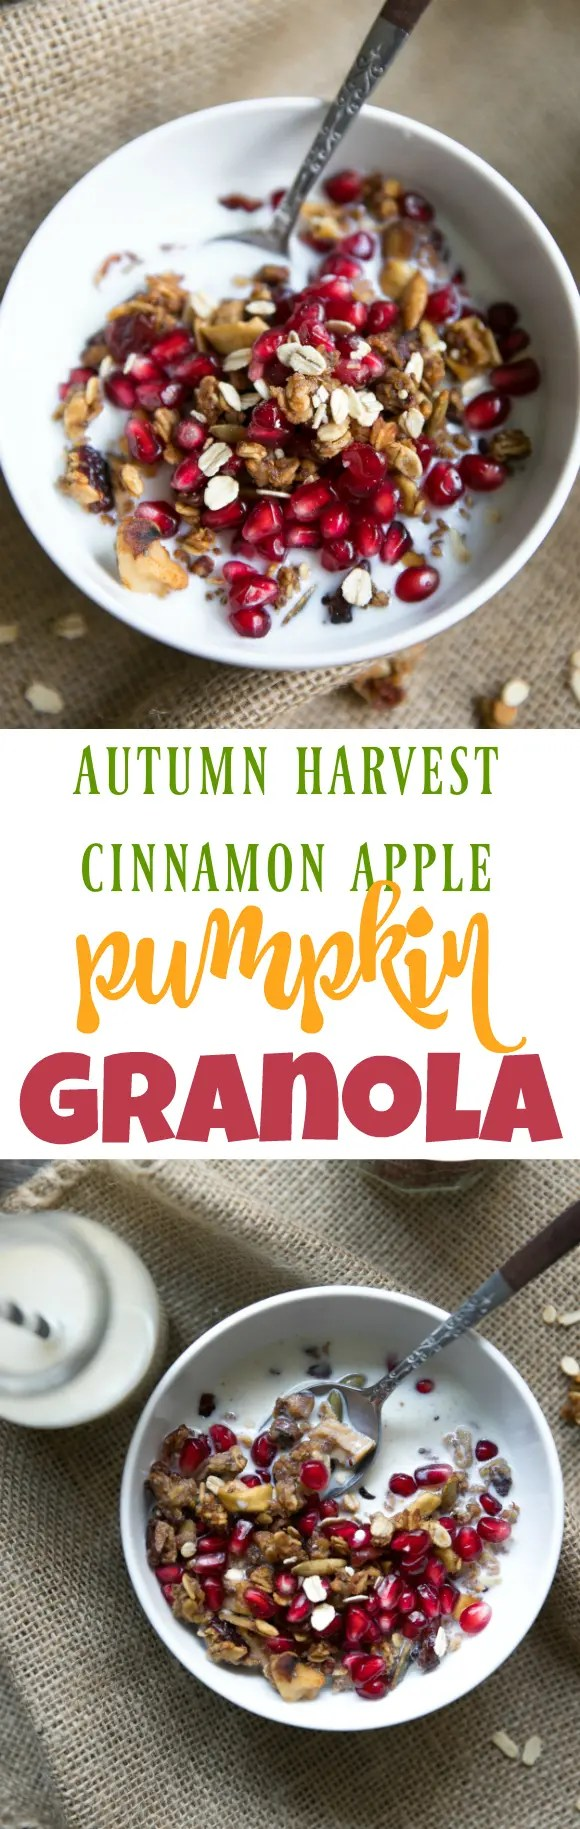 Autumn Harvest Cinnamon Apple Pumpkin Granola. The flavors of Autumn come together in this Autumn Harvest Cinnamon Apple and Pumpkin Granola; an easy, healthy and homemade breakfast treat the whole family will love! #autumn #granola #breakfast #healthyrecipes #pumpkin